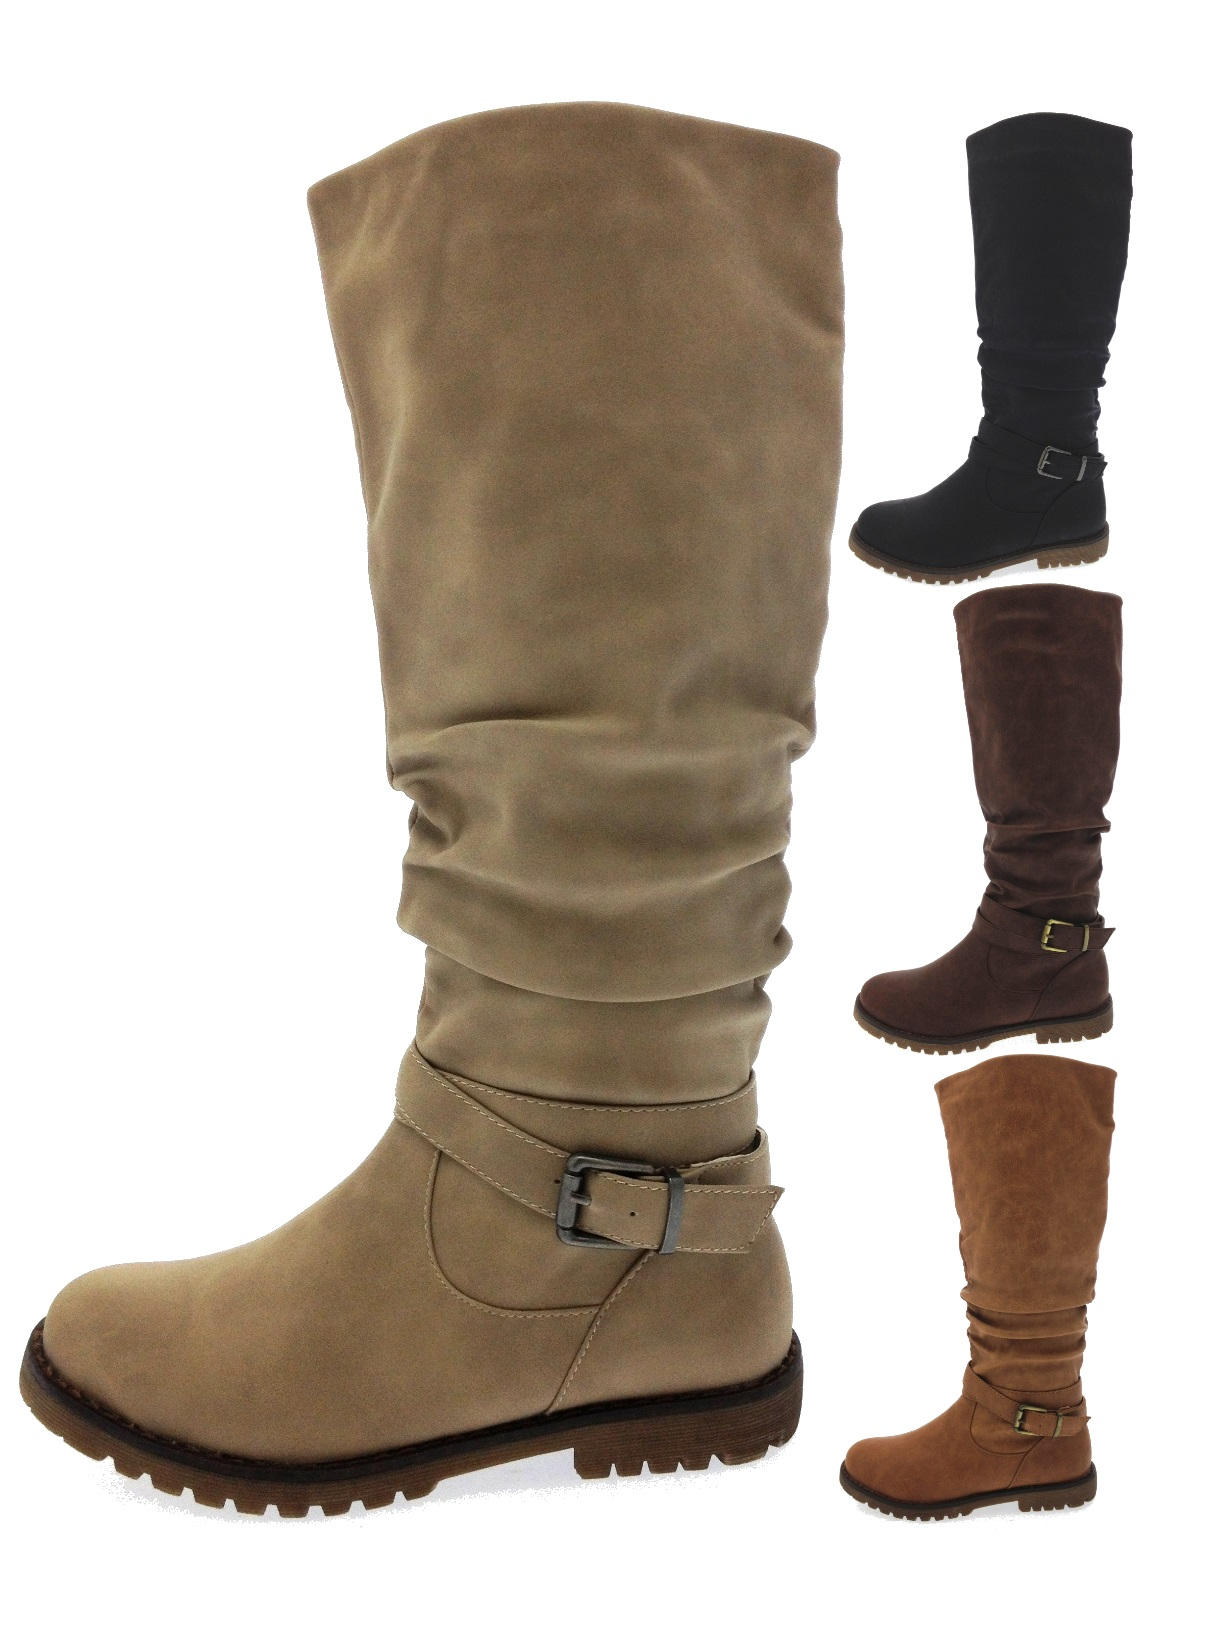 how to break in riding boots fast